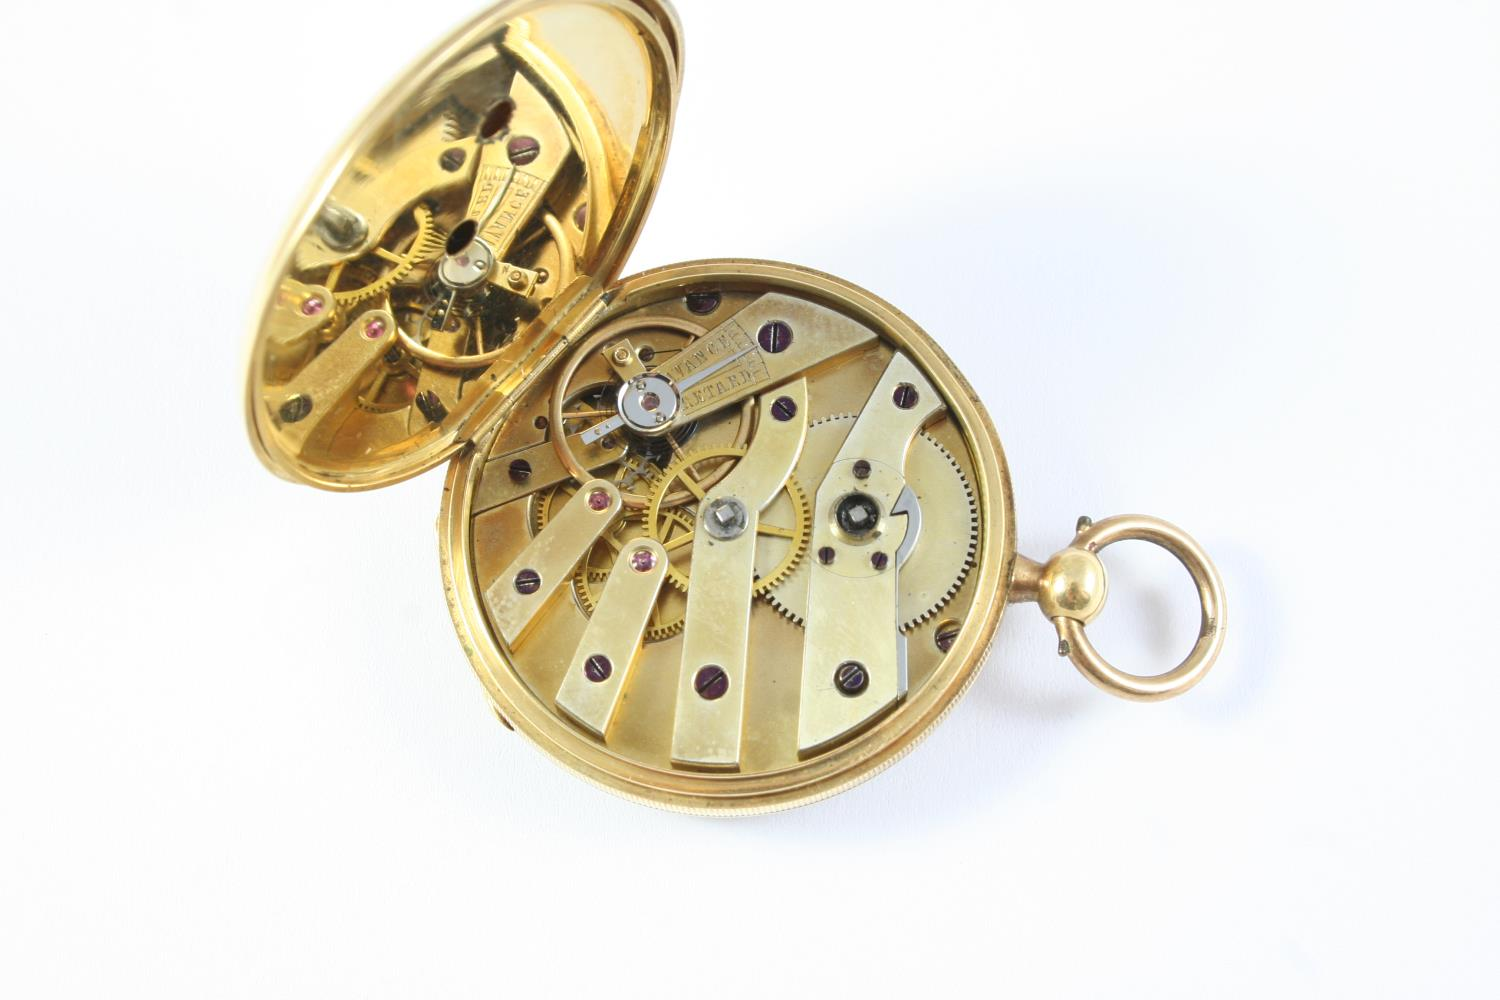 A GOLD OPEN FACED POCKET WATCH the gold foliate engraved dial with Roman numerals, engraved to the - Image 4 of 4